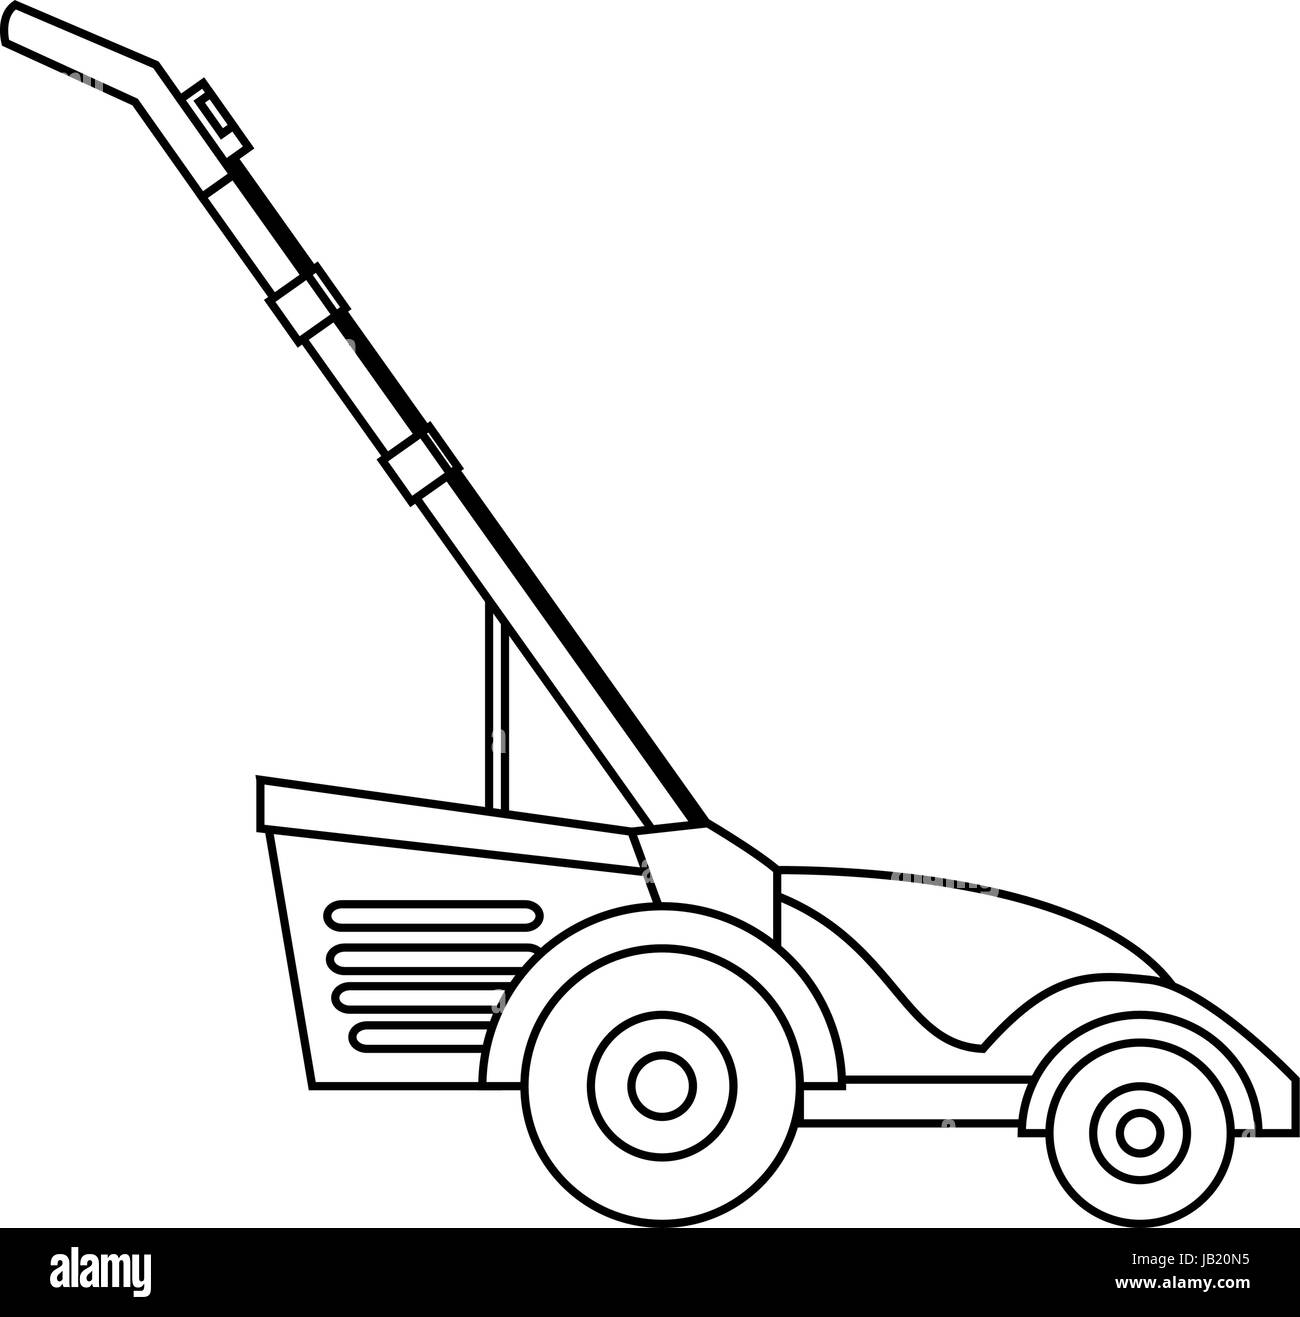 Lawn Mower Black And White Stock Photos Amp Images Alamy